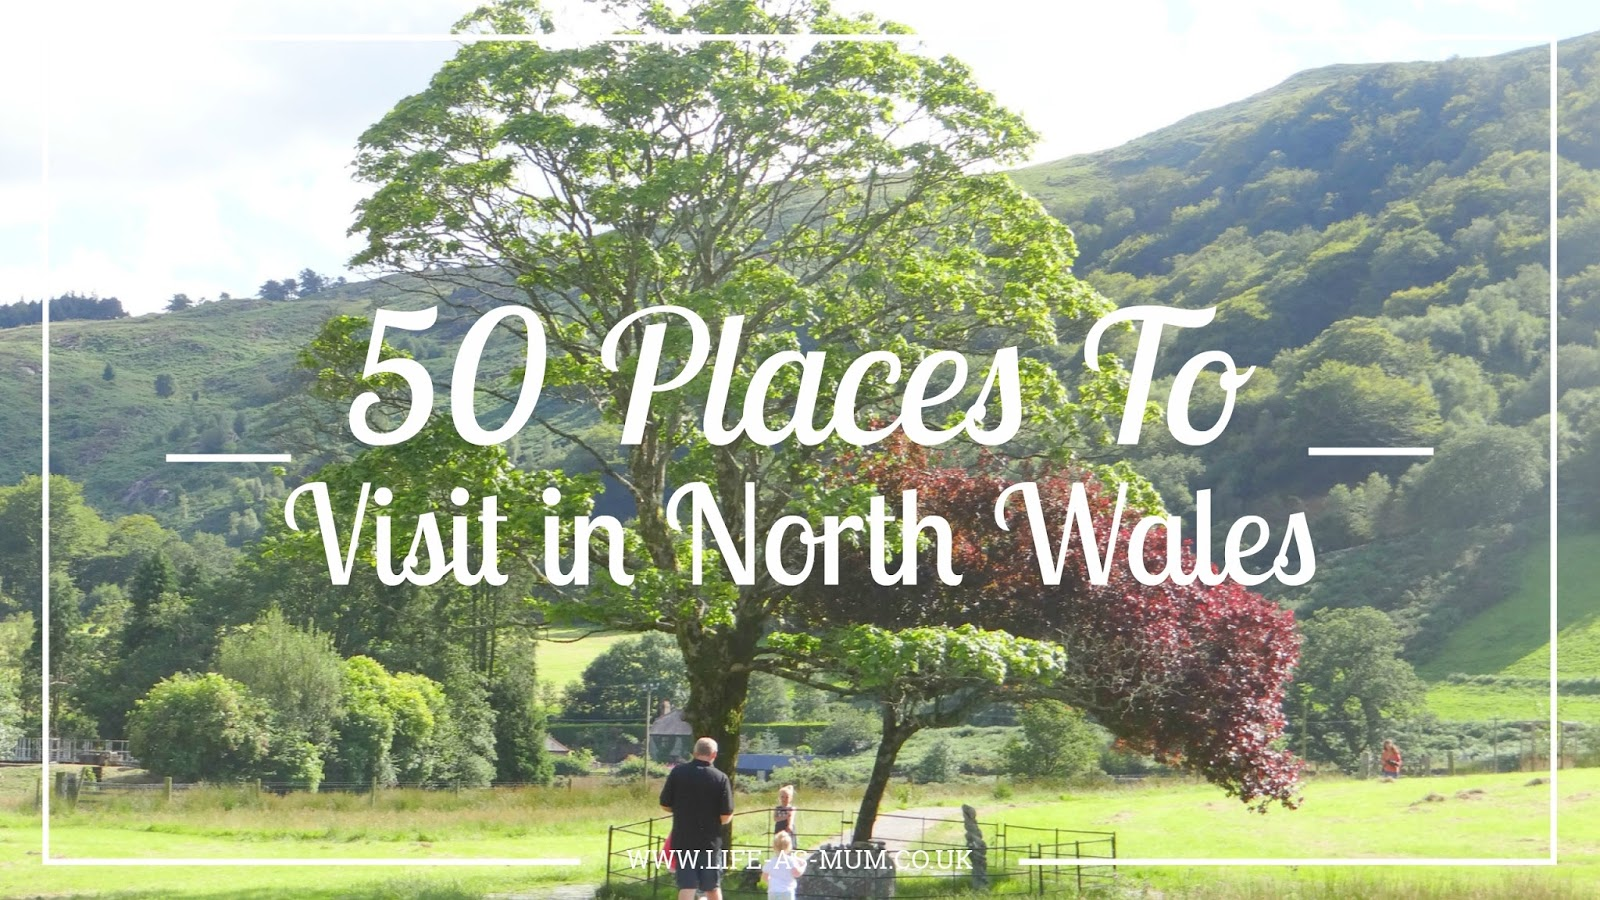 50 PLACES TO VISIT IN NORTH WALES